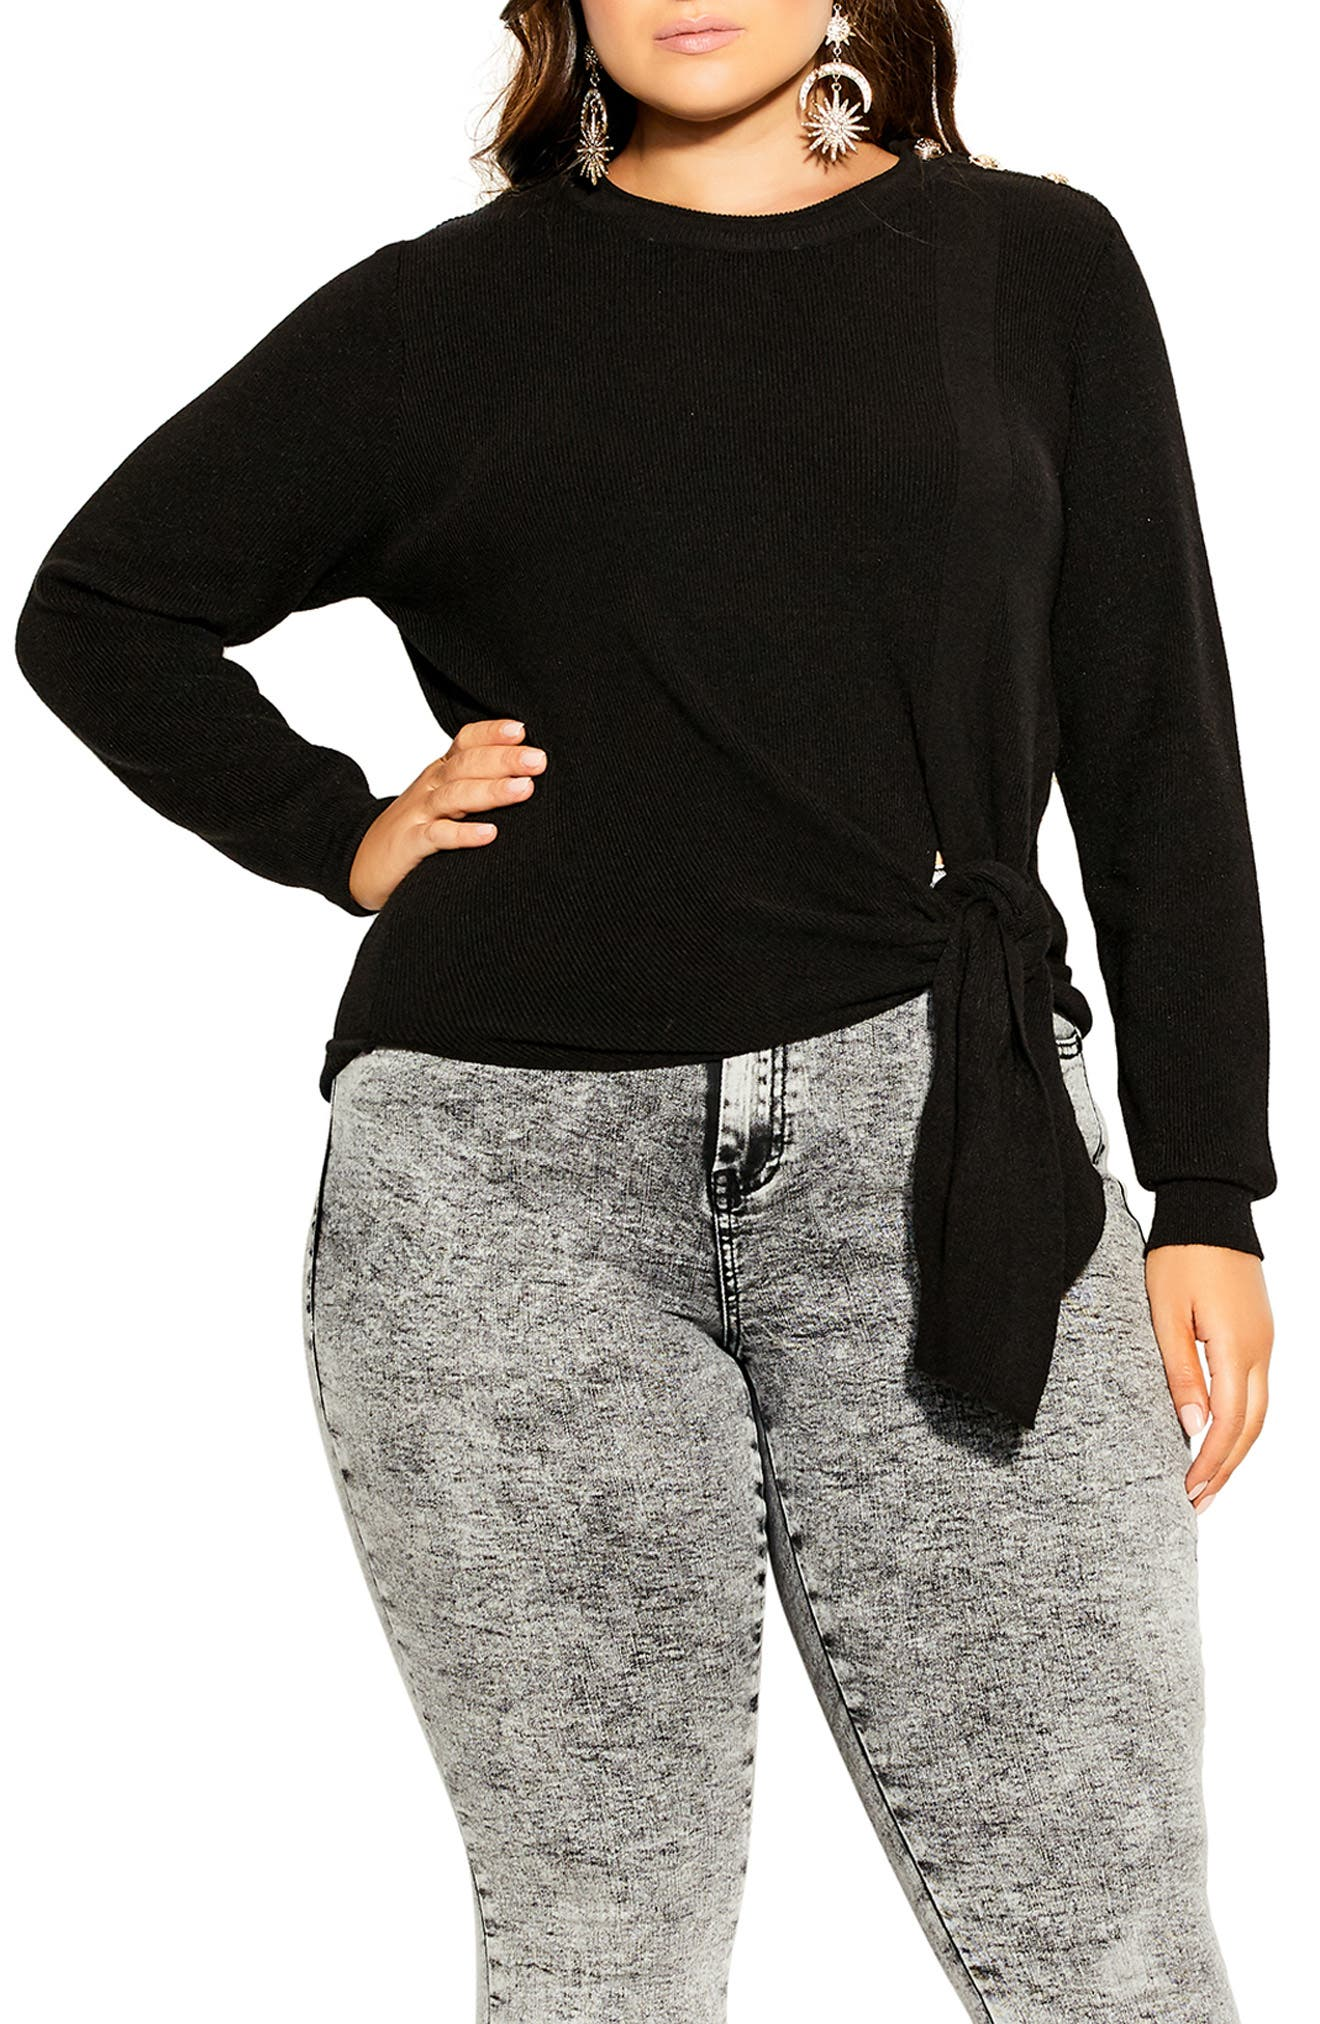 Royal Button Detail Tie Front Sweater